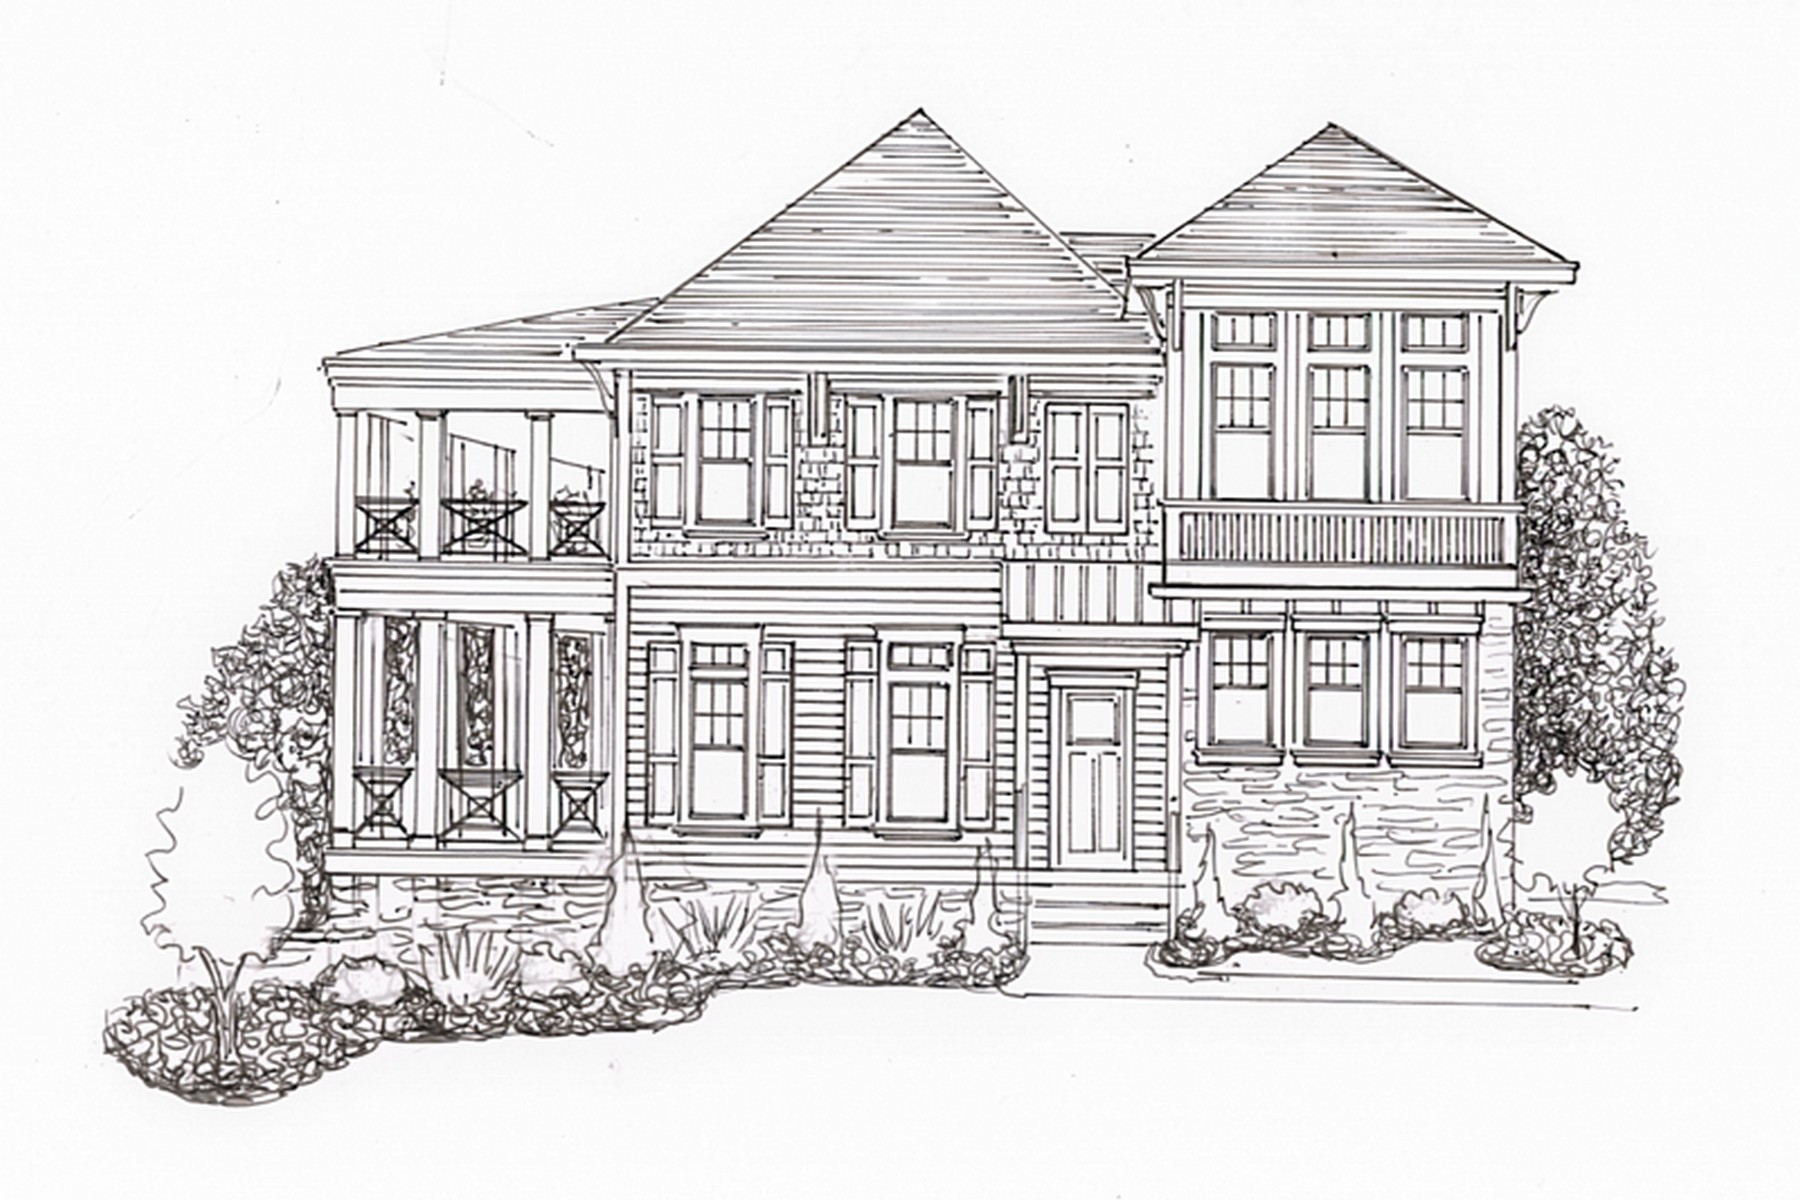 Single Family Home for Sale at 8222 Spring Glade Place (New Construction to be Built) Prospect, Kentucky 40059 United States